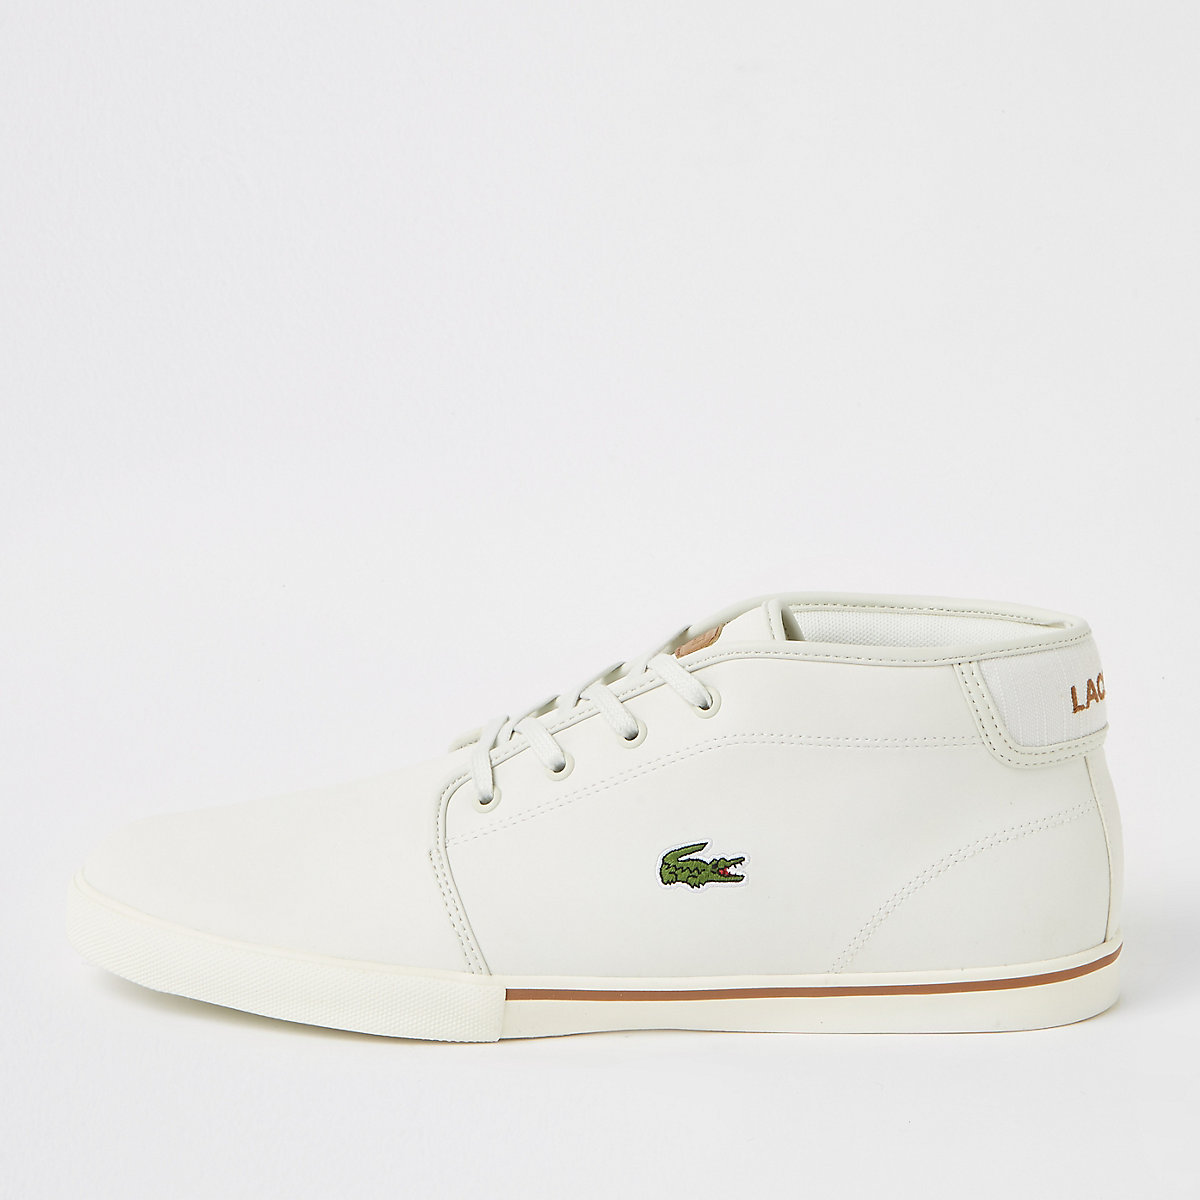 Lacoste white leather sneakers